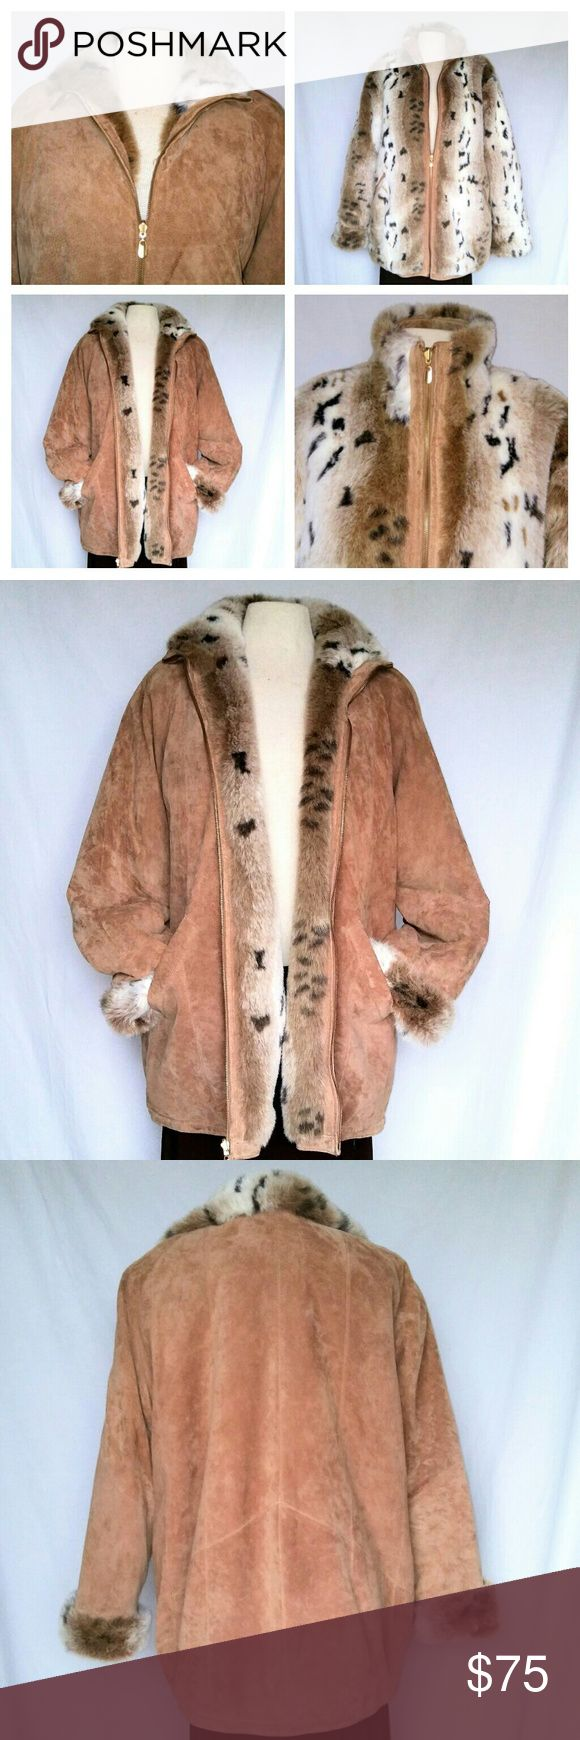 WINLIT Reversible Suede & Faux Fur Coat 80s Vintage Winslit Reversible Coat: 100% Suede Leather + Animal Print Faux Fur! Pockets on both sides. Tag inside pocket. Reversible zipper. Women's Large. In excellent used condition. Shows hardly any wear. Small green mark on bottom of one sleeve, but it doesn't show when the cuff is rolled, which is how it should be worn. Note that I have not tried to remove the mark. Faux fur side is perfect. From a smoke free home. Make an offer! Vintage Jackets…